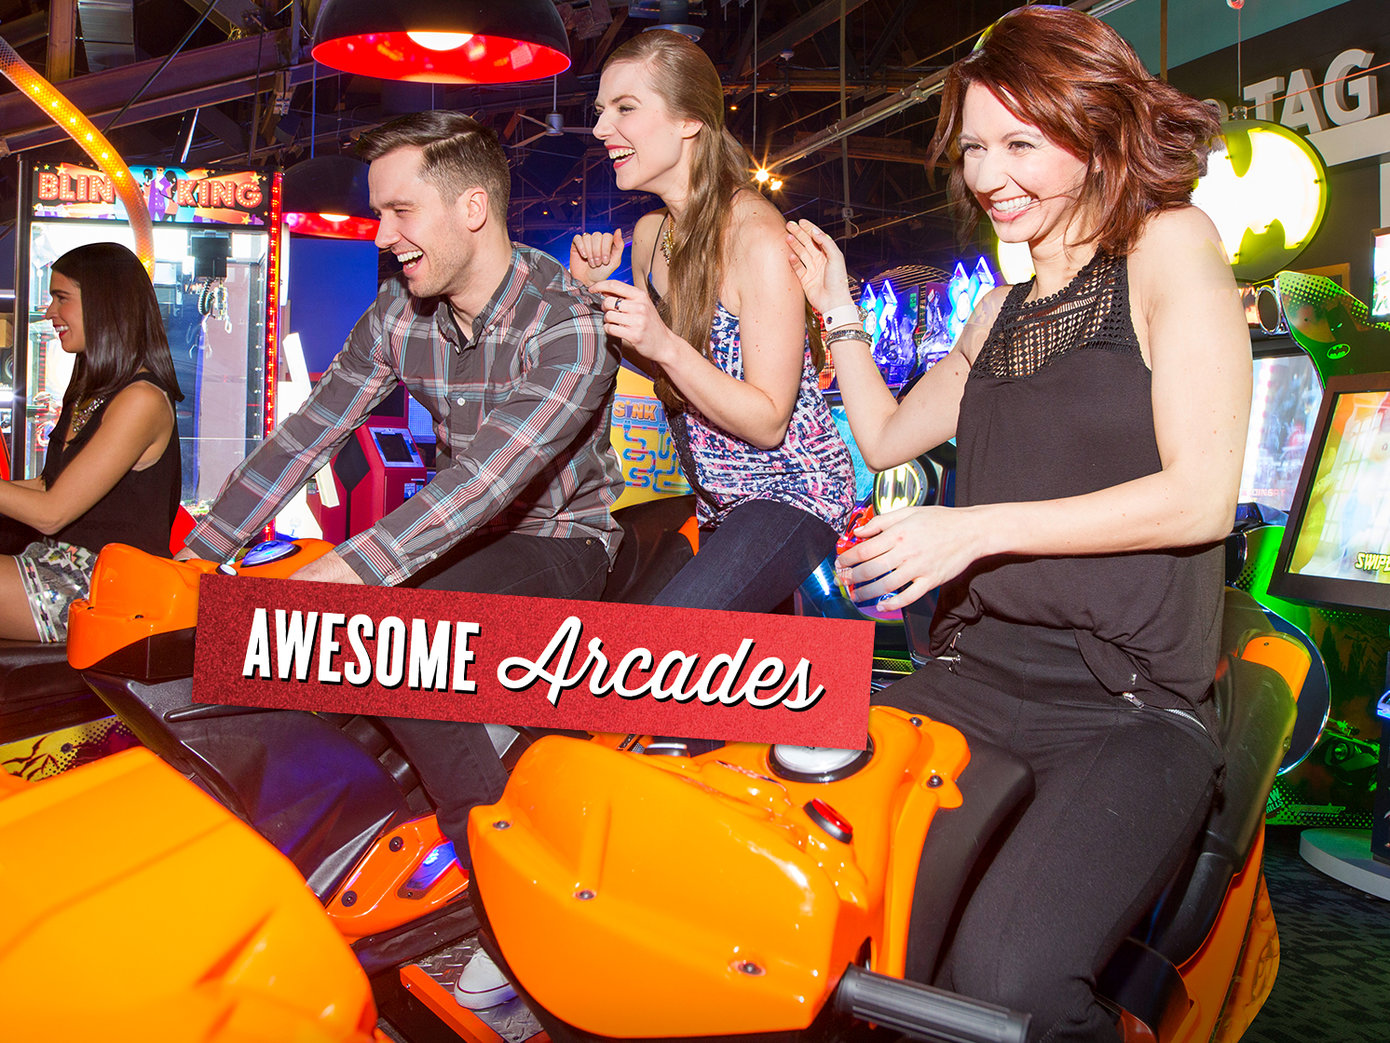 3 young adults playing on an arcade game having fun. It reads 'Awesome arcades' on top in red foil.